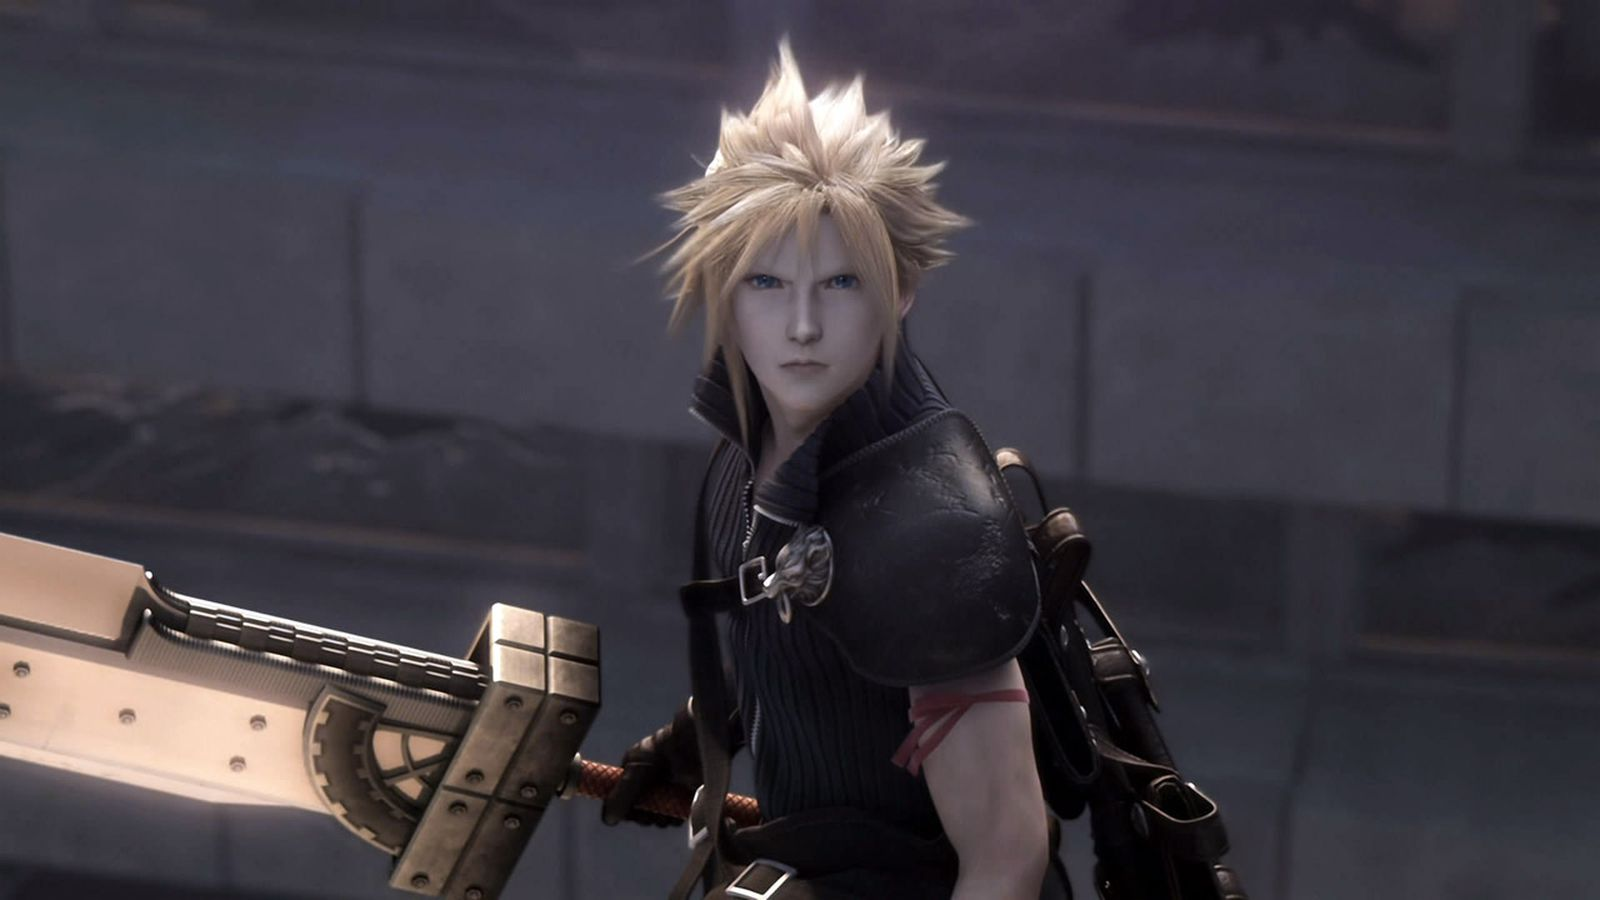 Final Fantasy 7 remake coming to PlayStation 4 - Polygon - photo#24